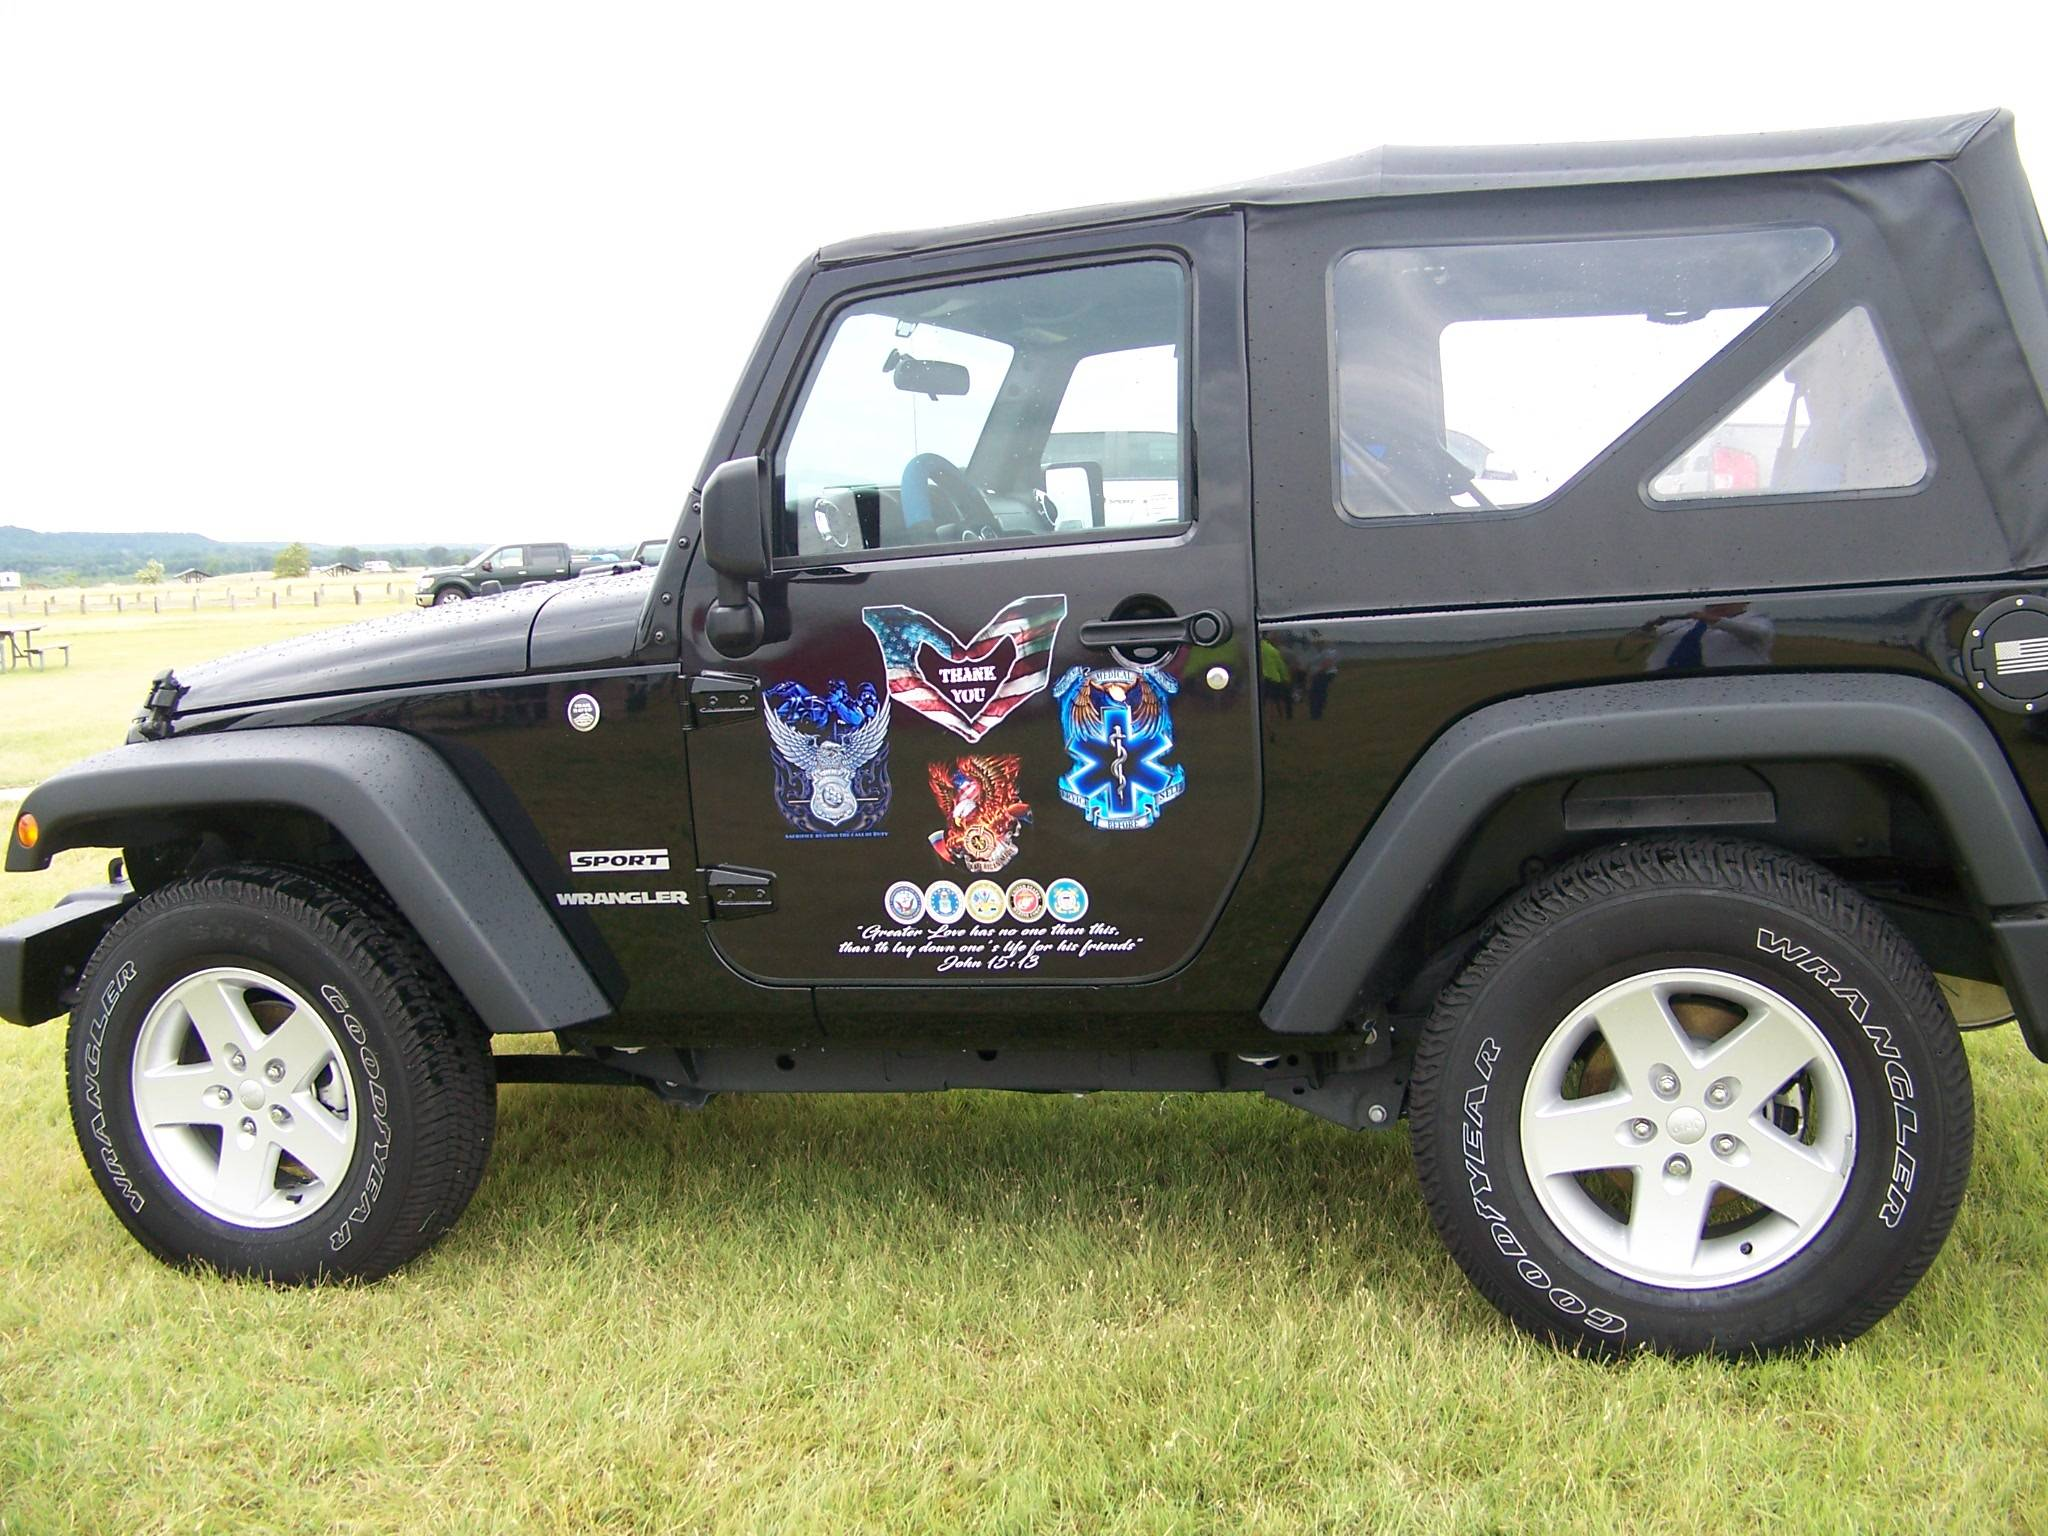 Decorated Jeep at the event